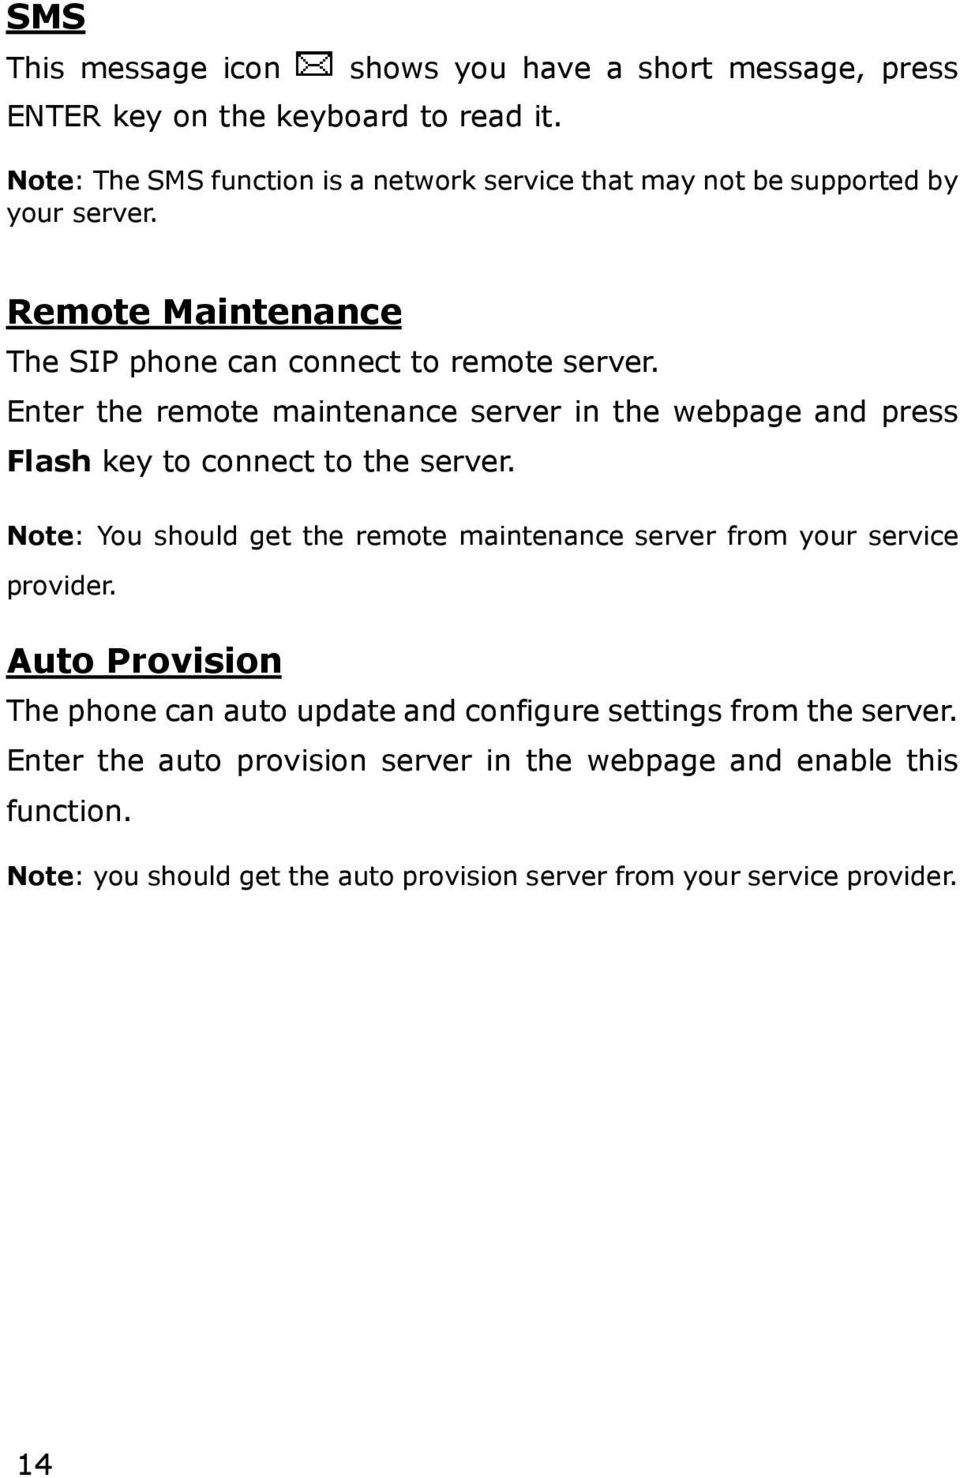 Enter the remote maintenance server in the webpage and press Flash key to connect to the server.